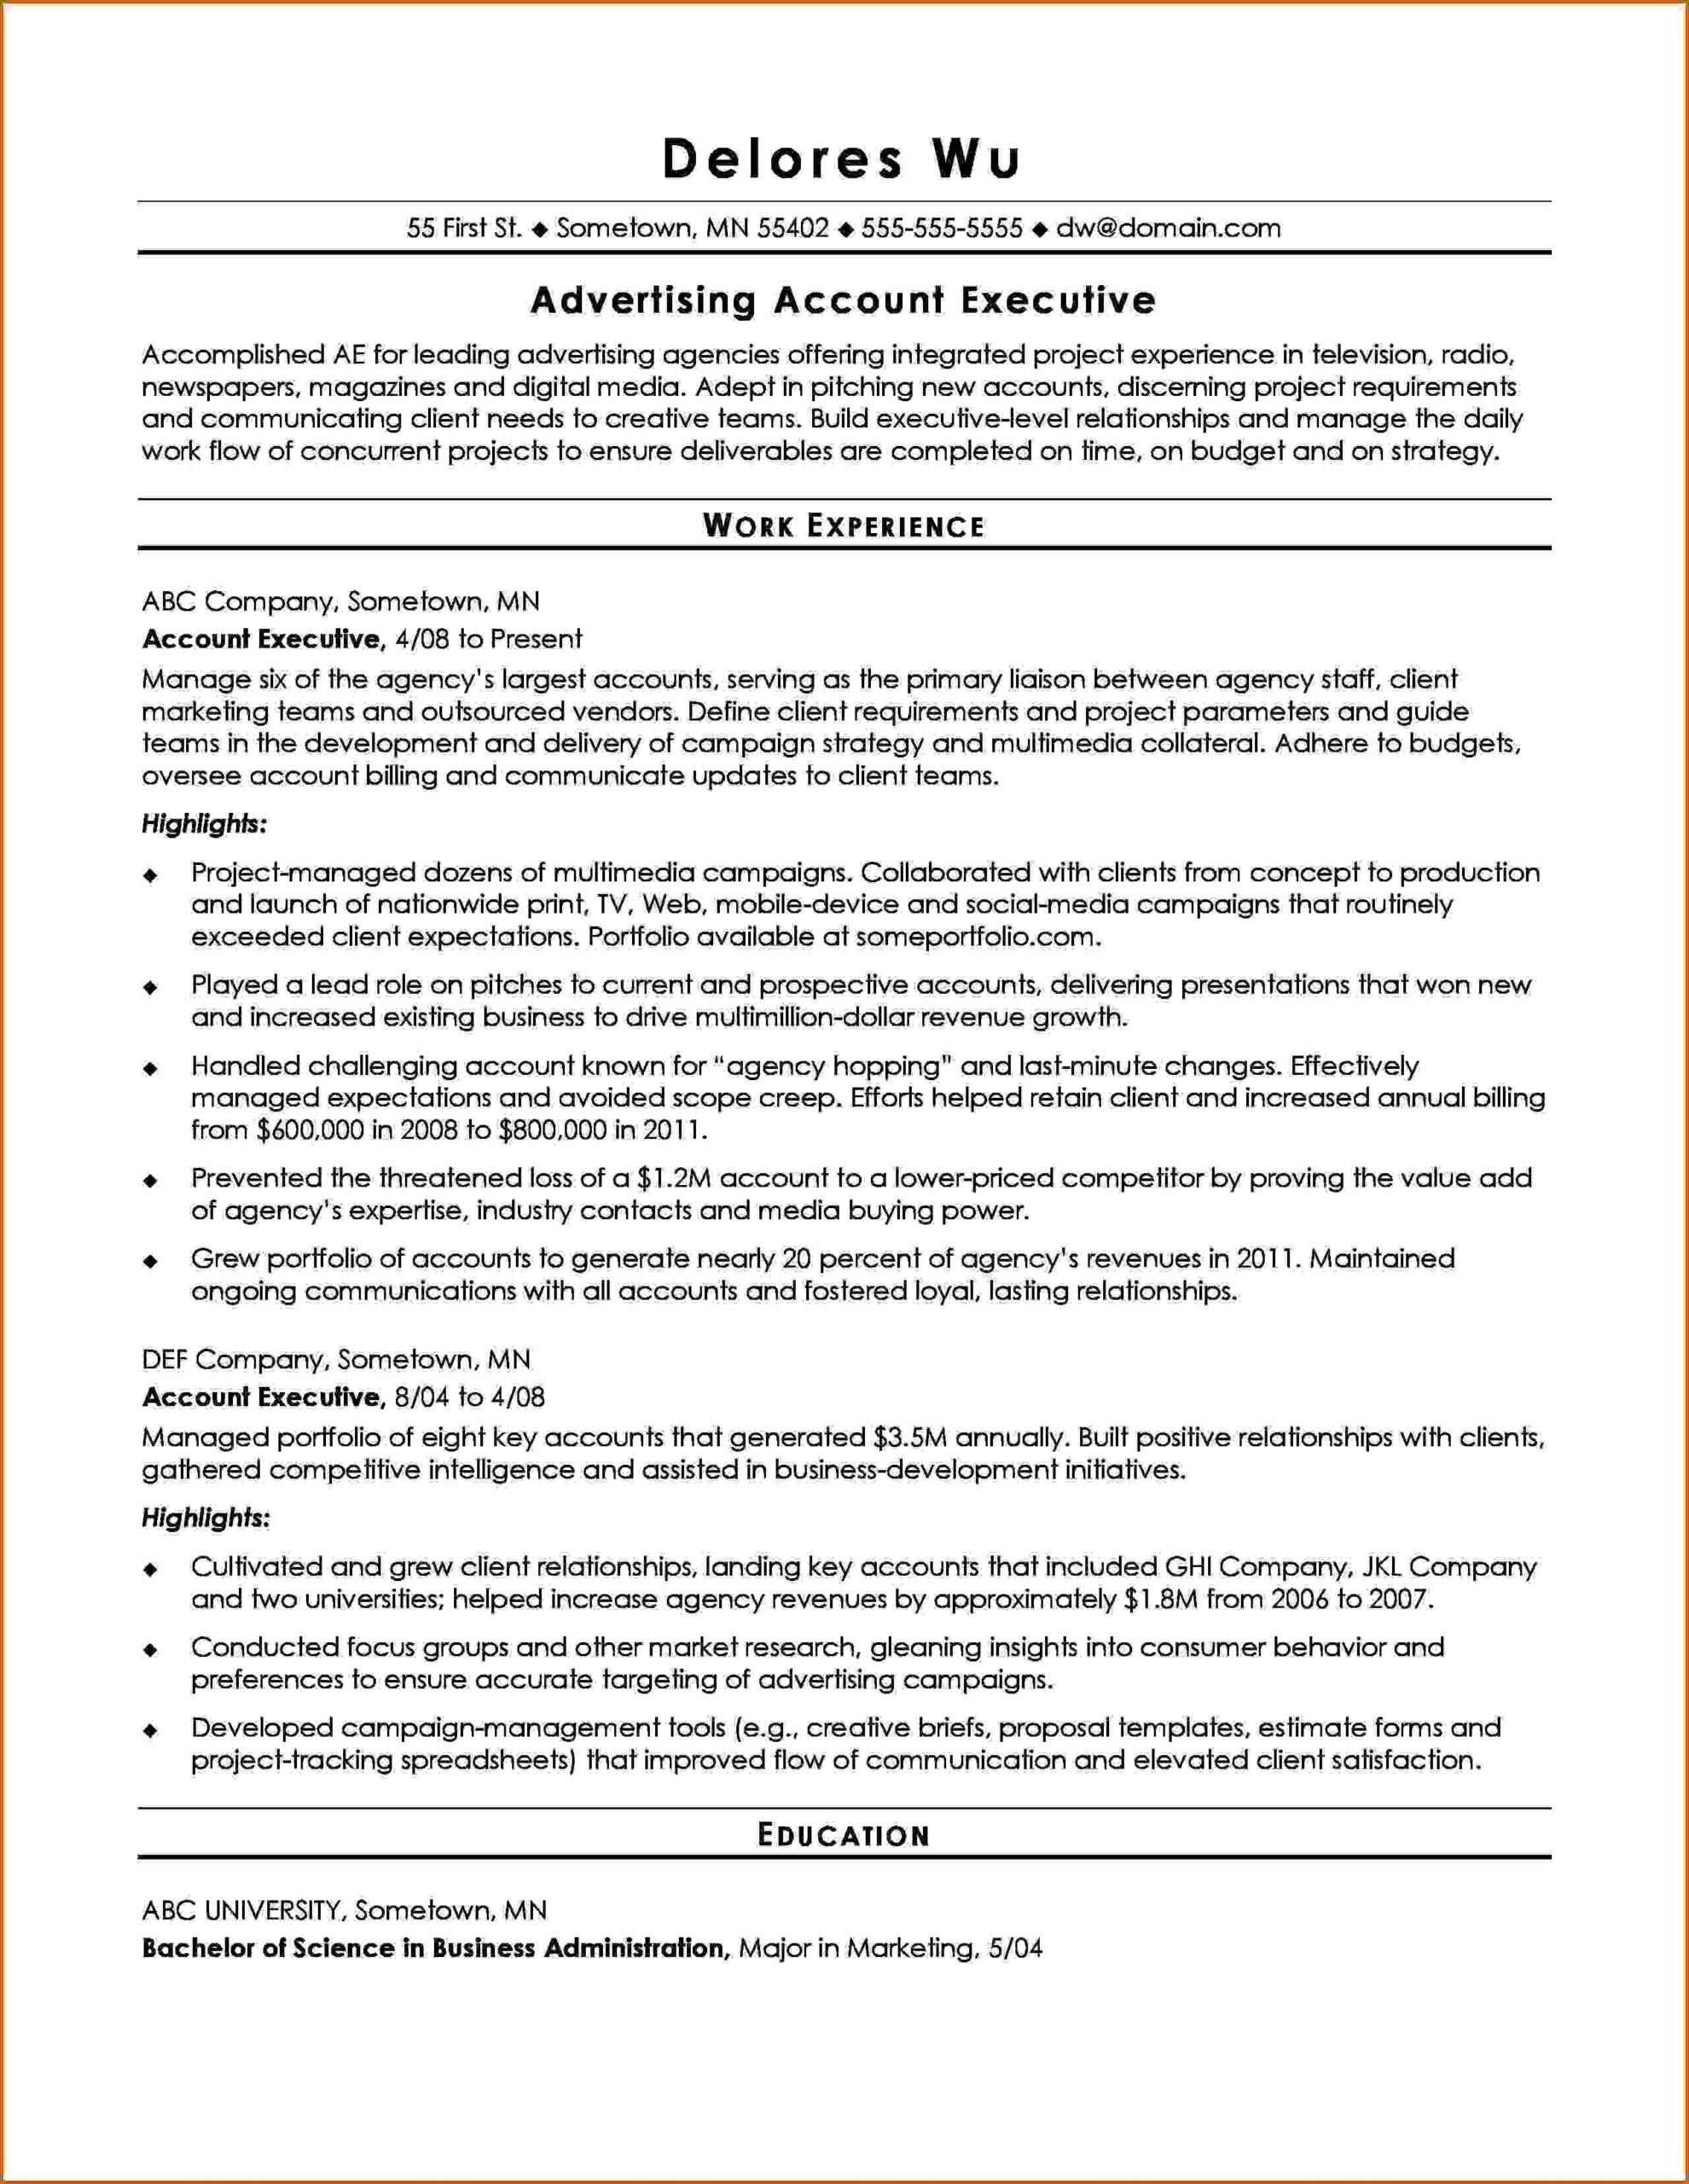 resume format ats contract template marketing proposal best for assembly worker senior Resume Best Resume Format For Ats